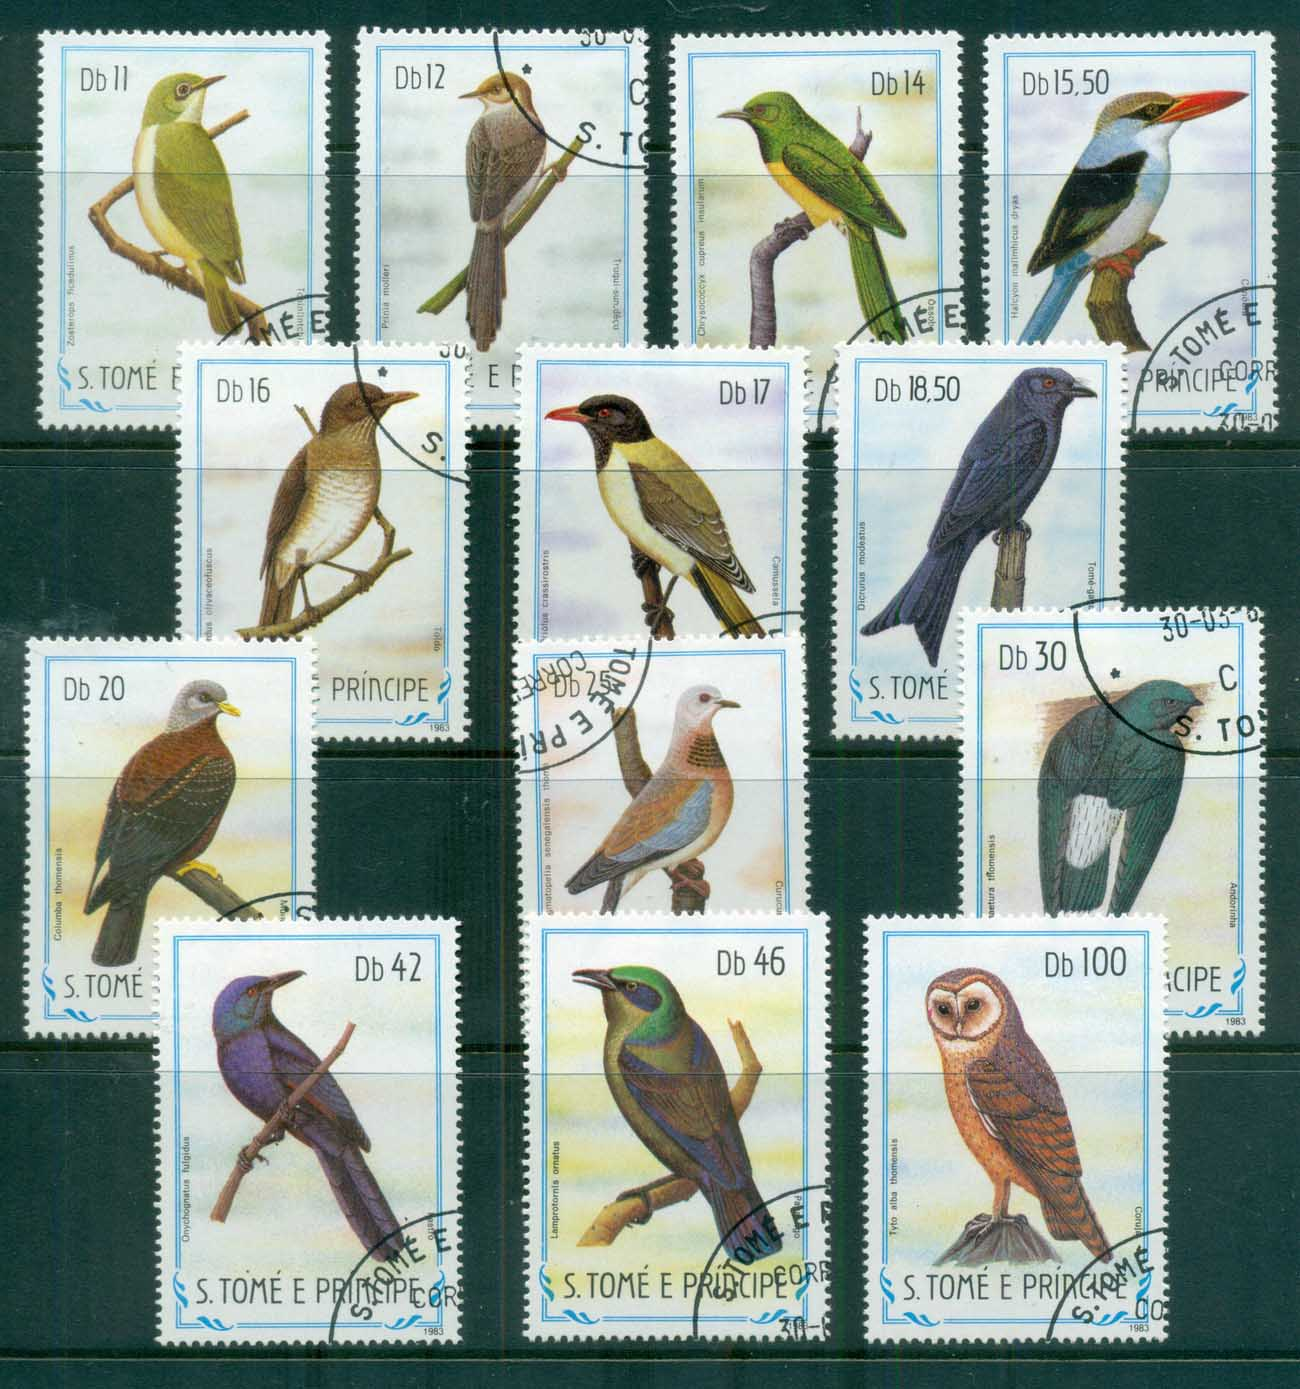 Sao Tome et Principe 1983 Birds (13/22, no low values 50c-10db CTO